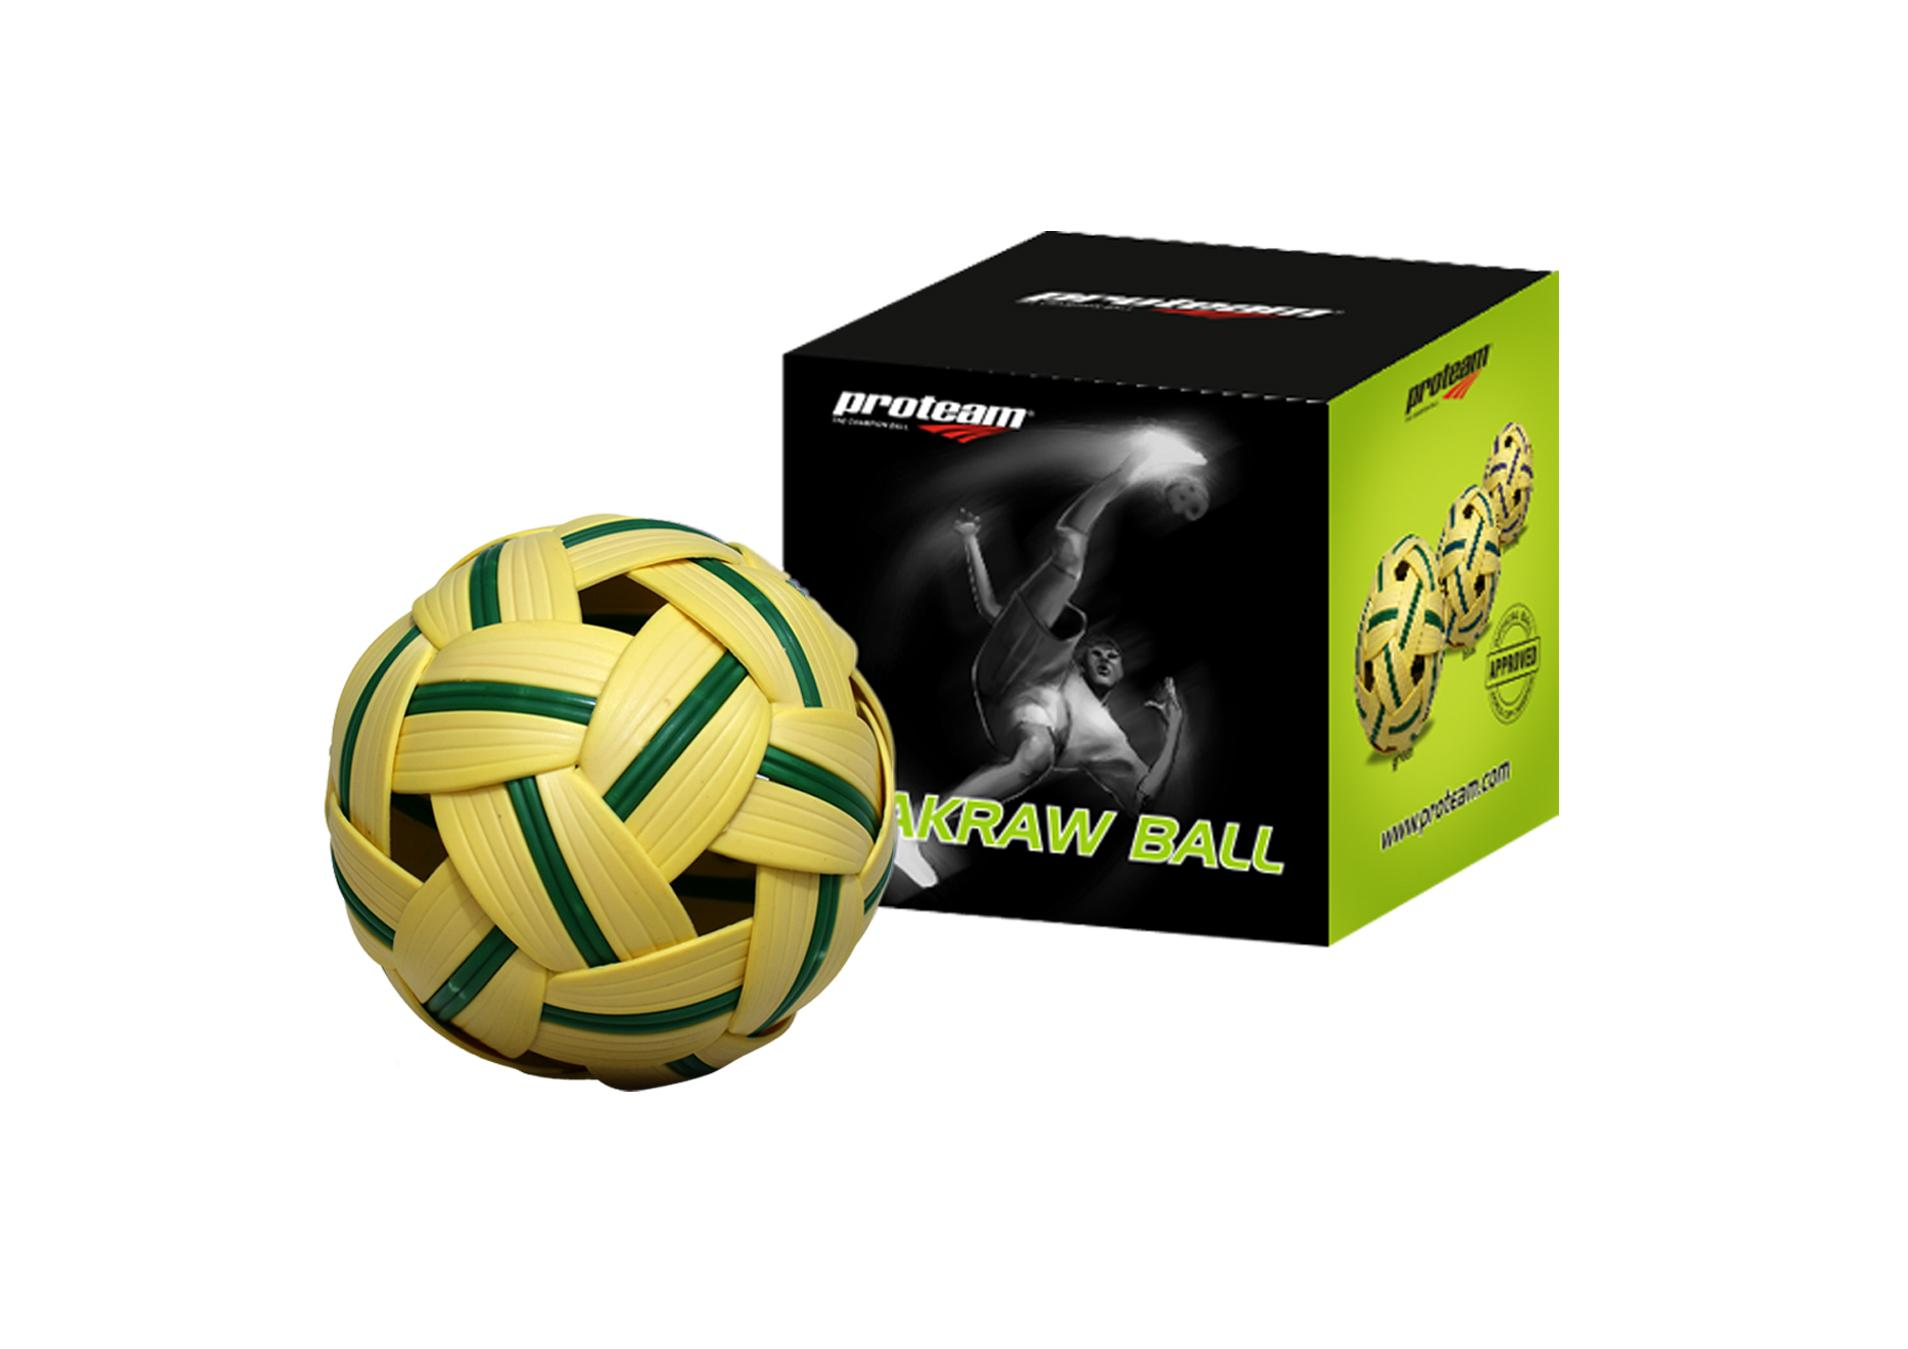 Proteam Bola Takraw - Cokelat By Proteam Indonesia